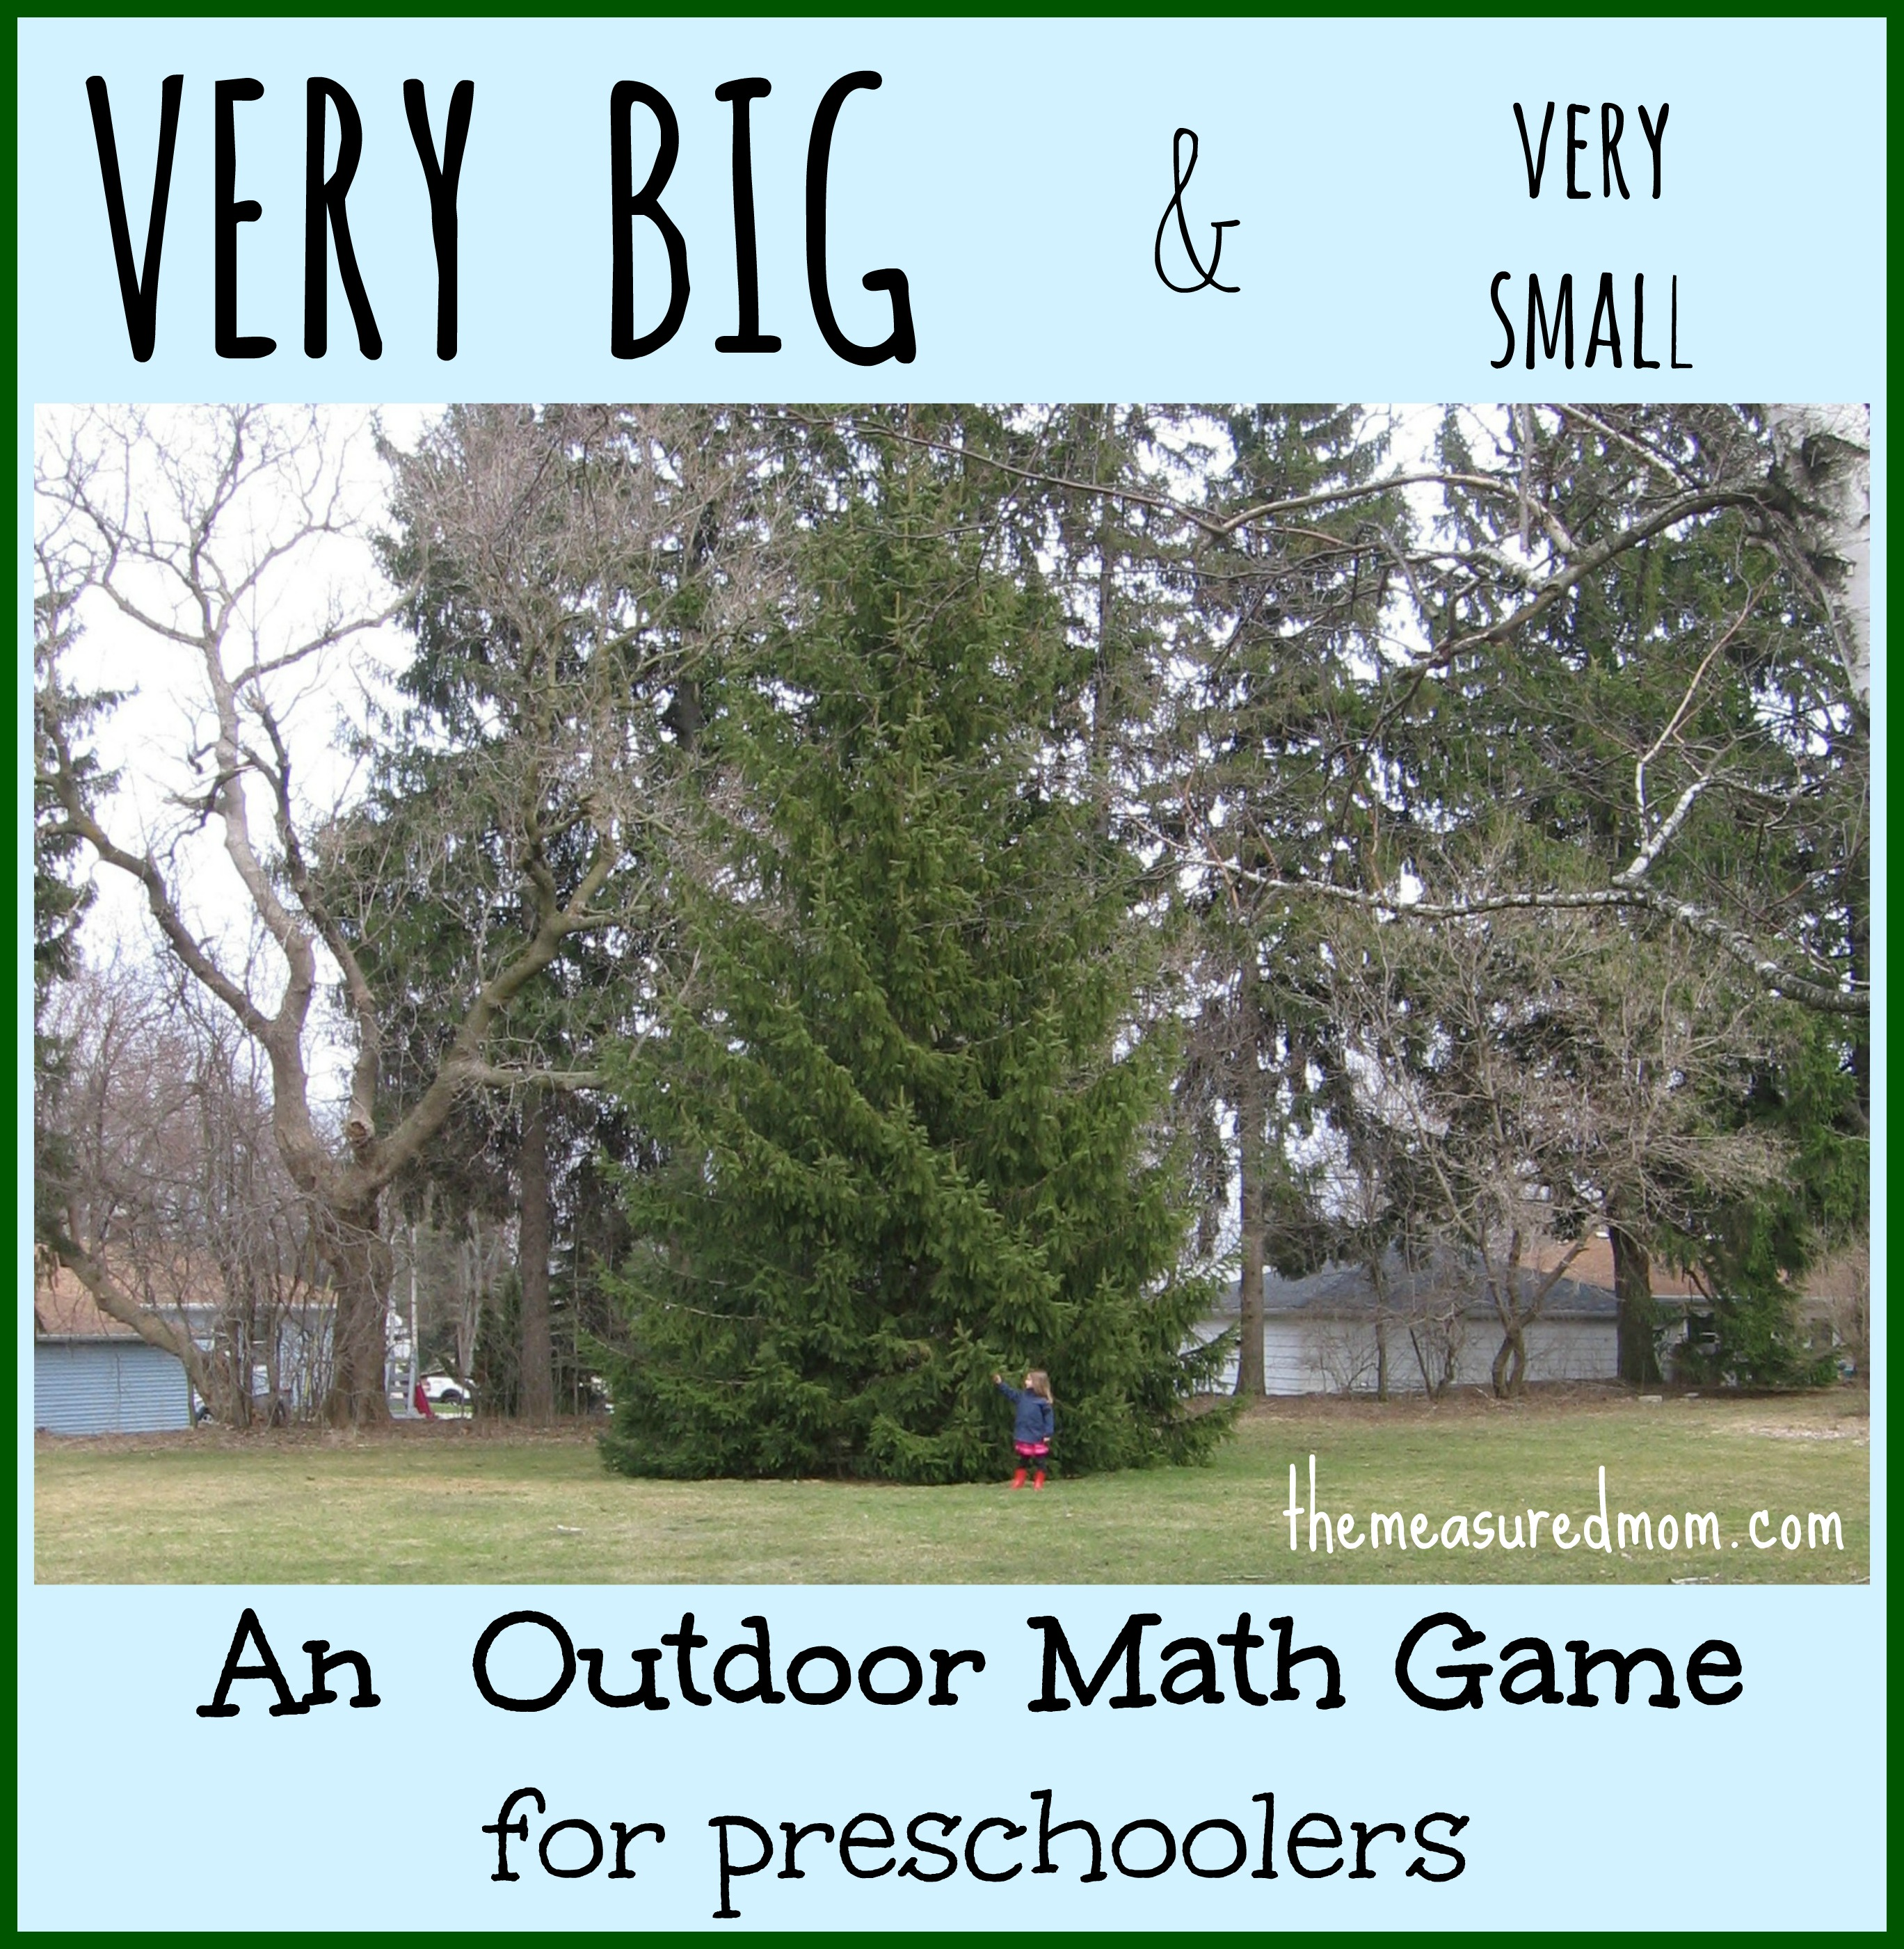 Outdoor Math Game: Exploring Size - The Measured Mom